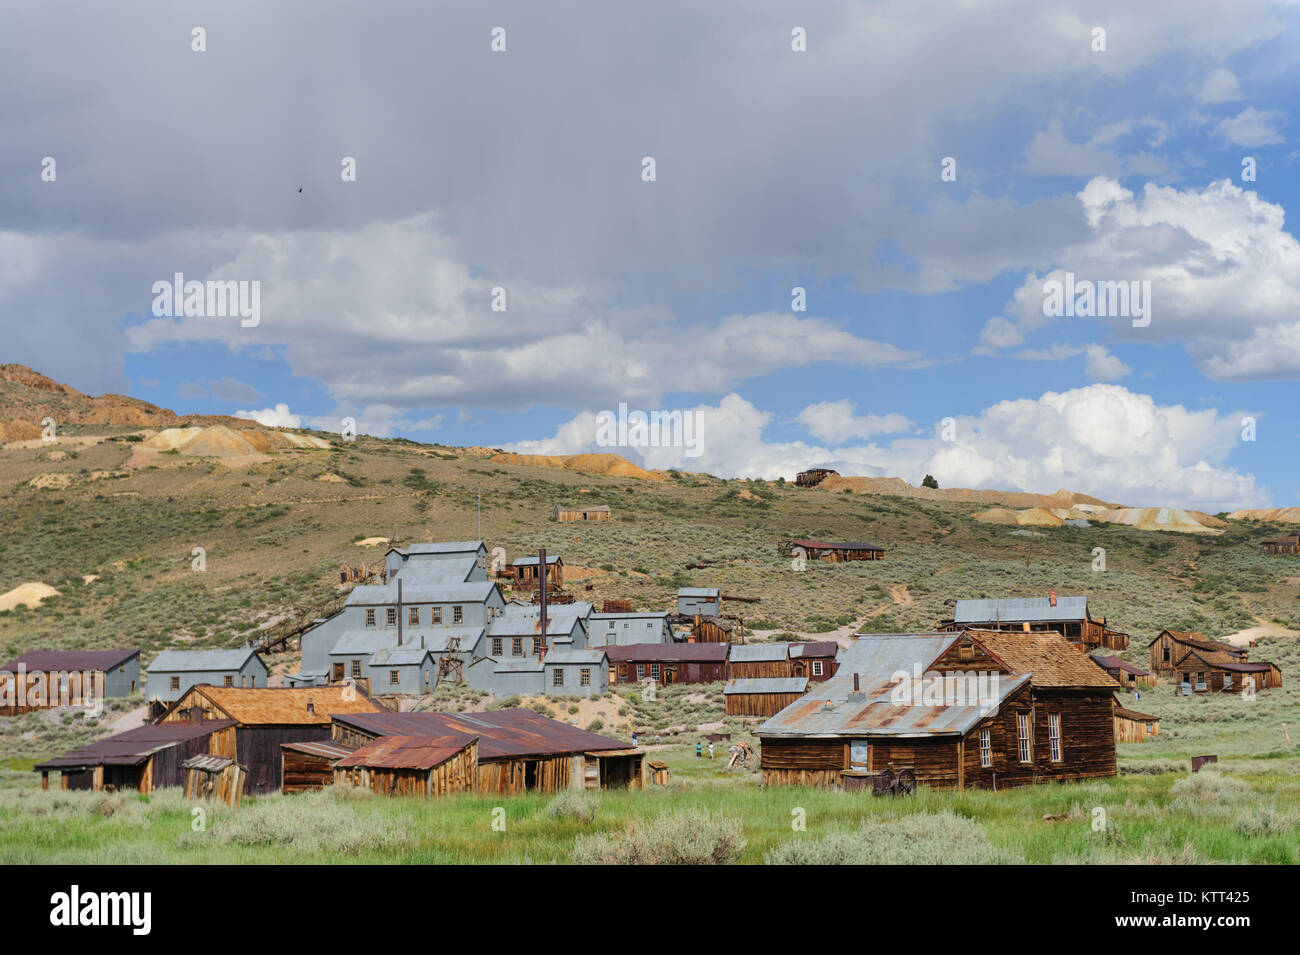 The Californian Ghost Town of Bodie - Stock Image